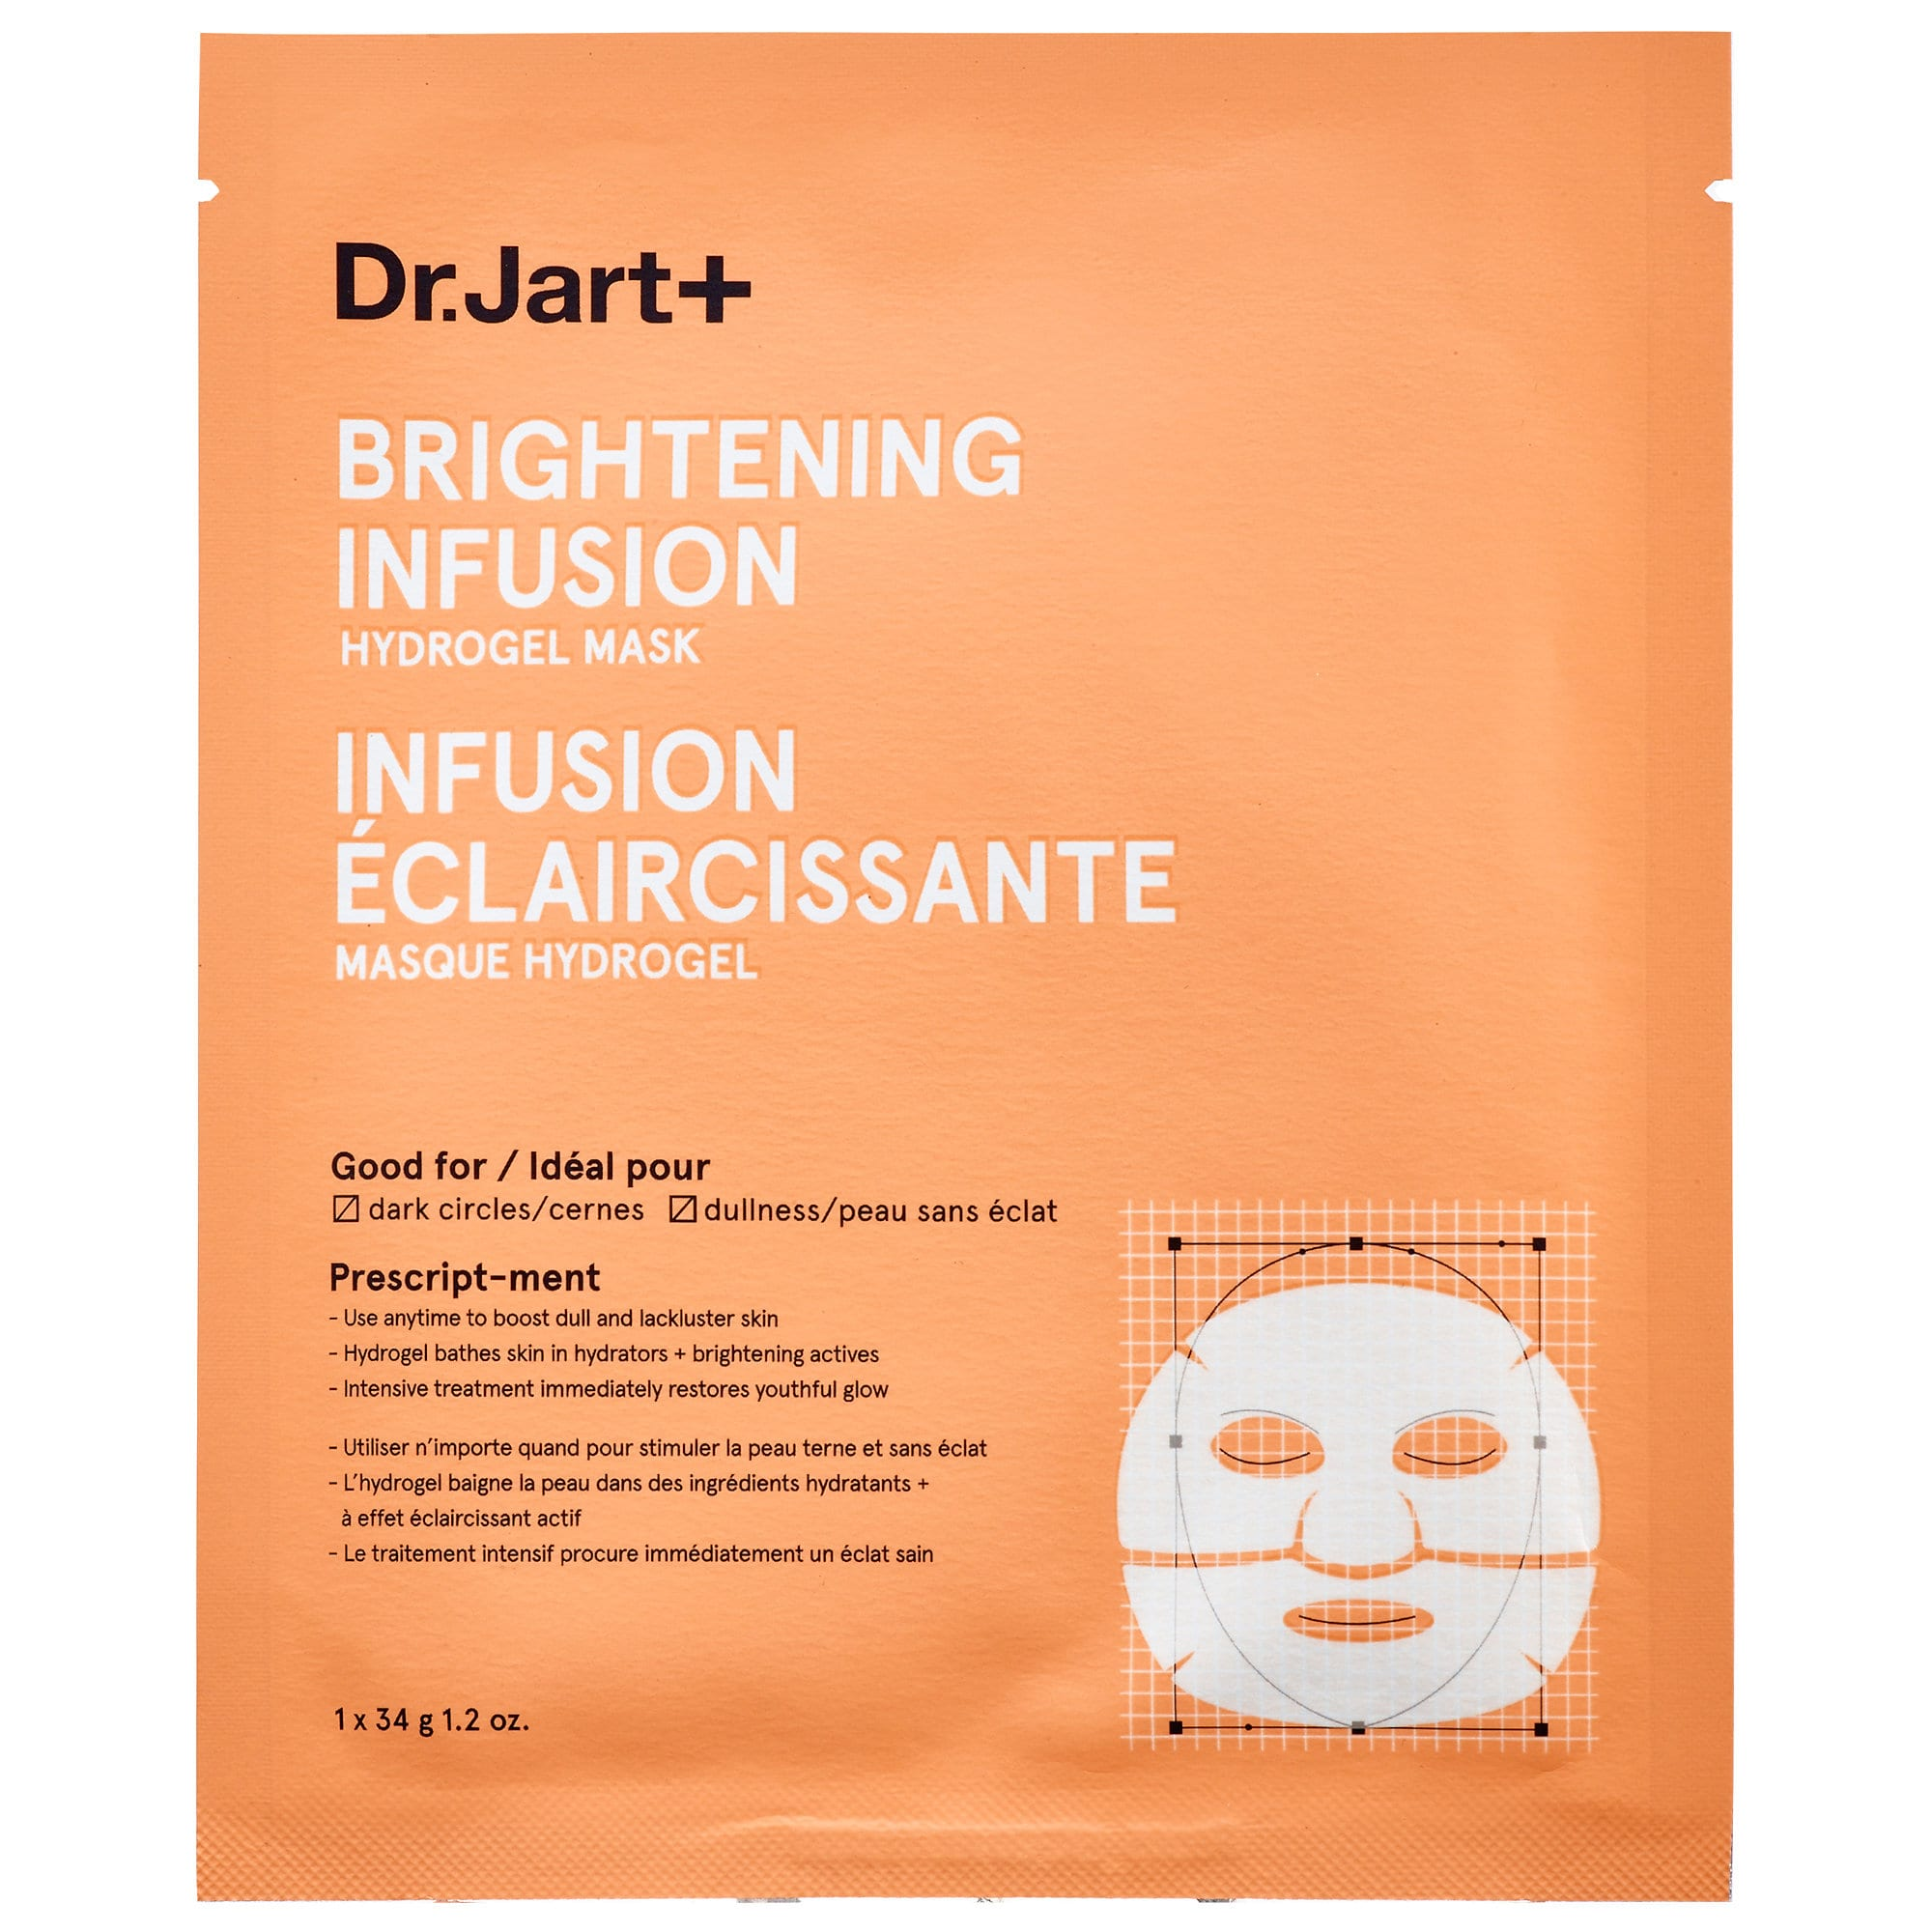 Dr. Jart+ Brightening Infusion Hydrogel Mask. Photo: Sephora.